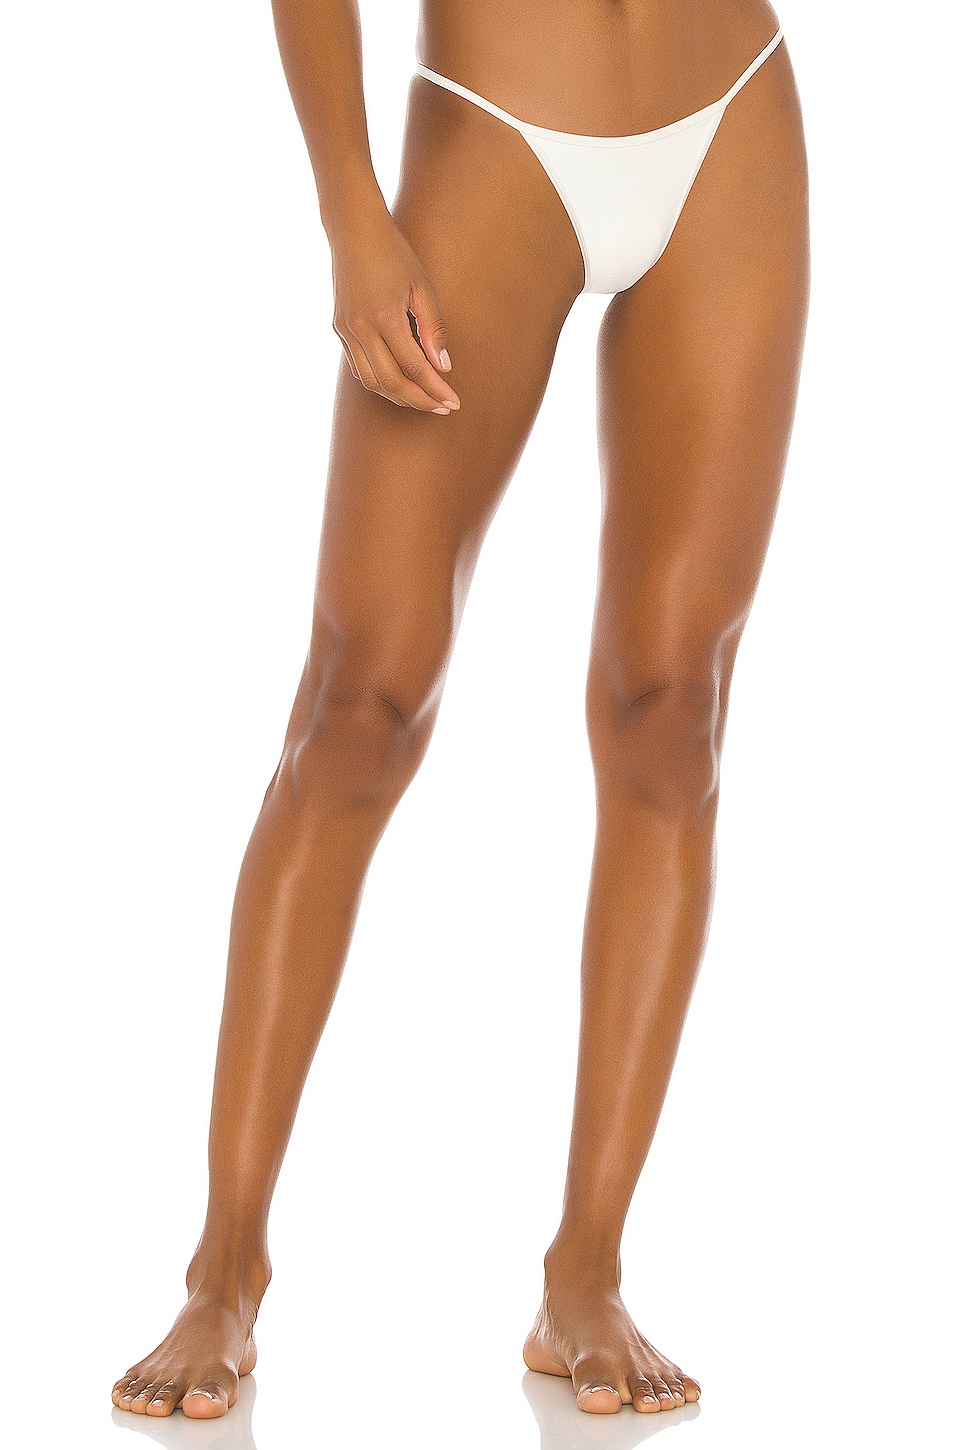 House of Harlow 1960 X REVOLVE Andes Bottom in White